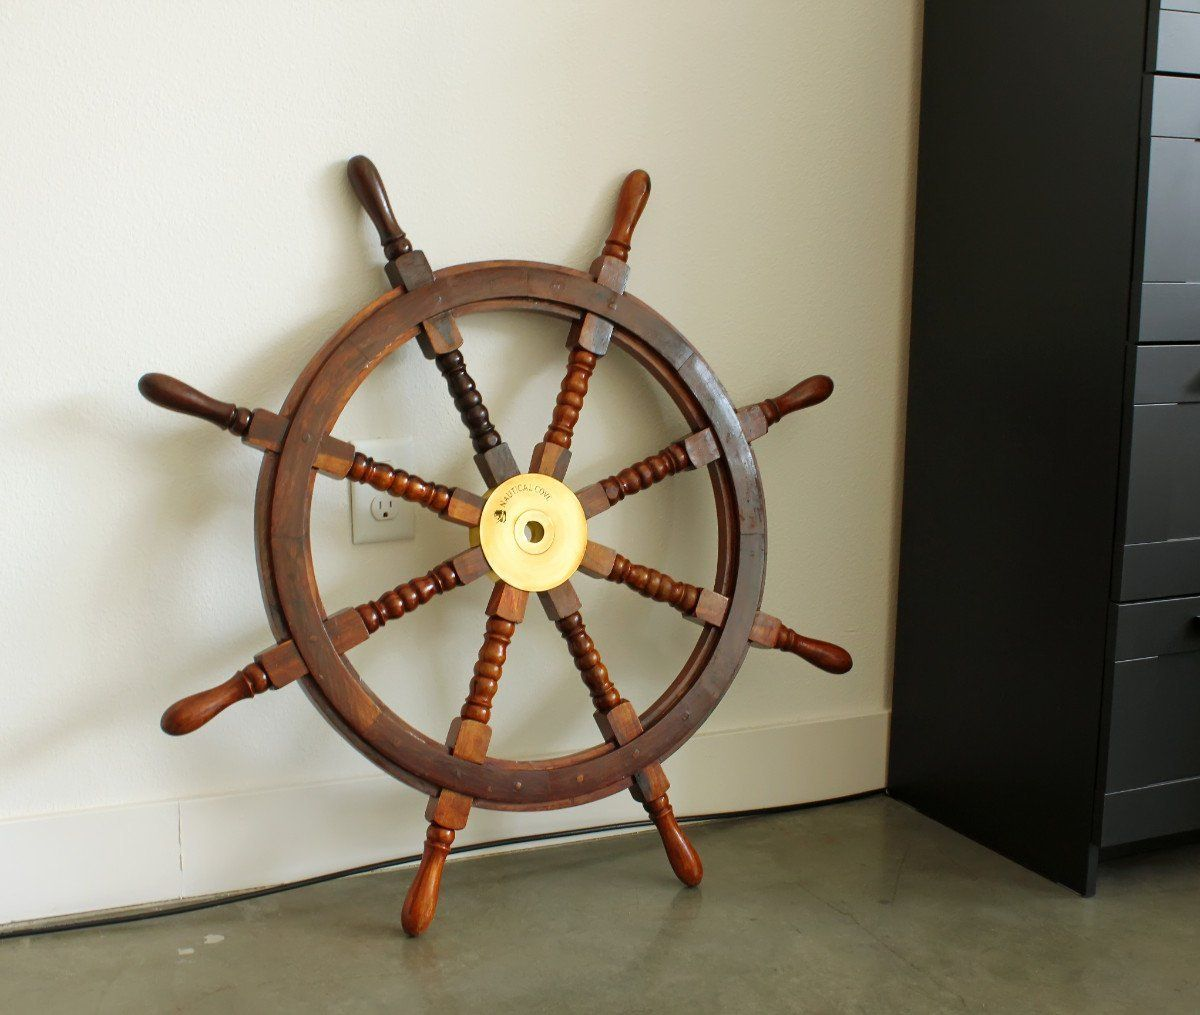 Nautical Cove Wooden Ship Wheel Pirate Decor Ships Wheel For Home Boats And Walls 36 Diameter Pirate Decor Wooden Ship Ship Wheel